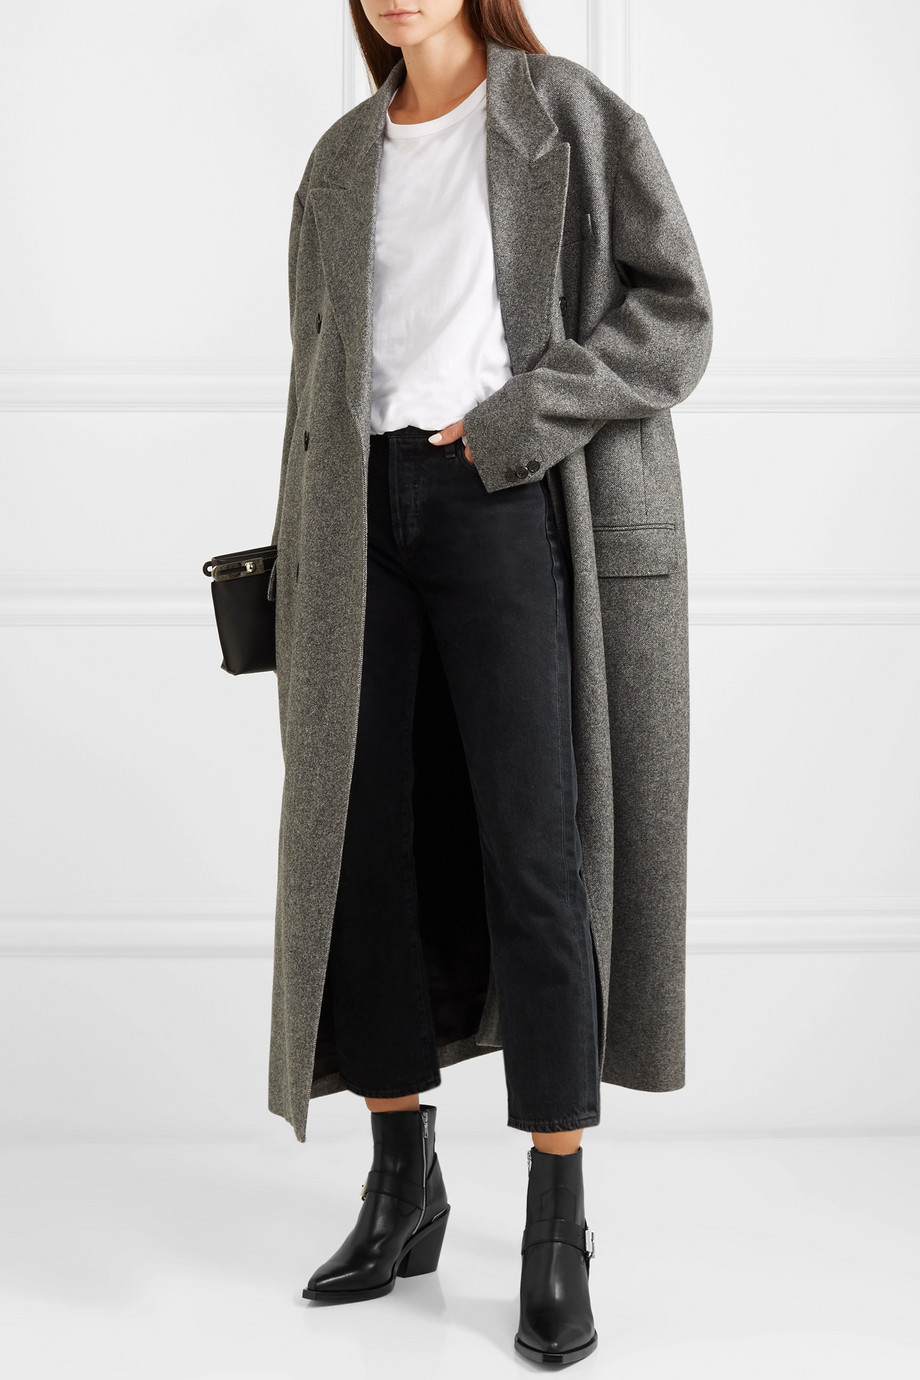 Rag & Bone Ryder leather ankle boots $595